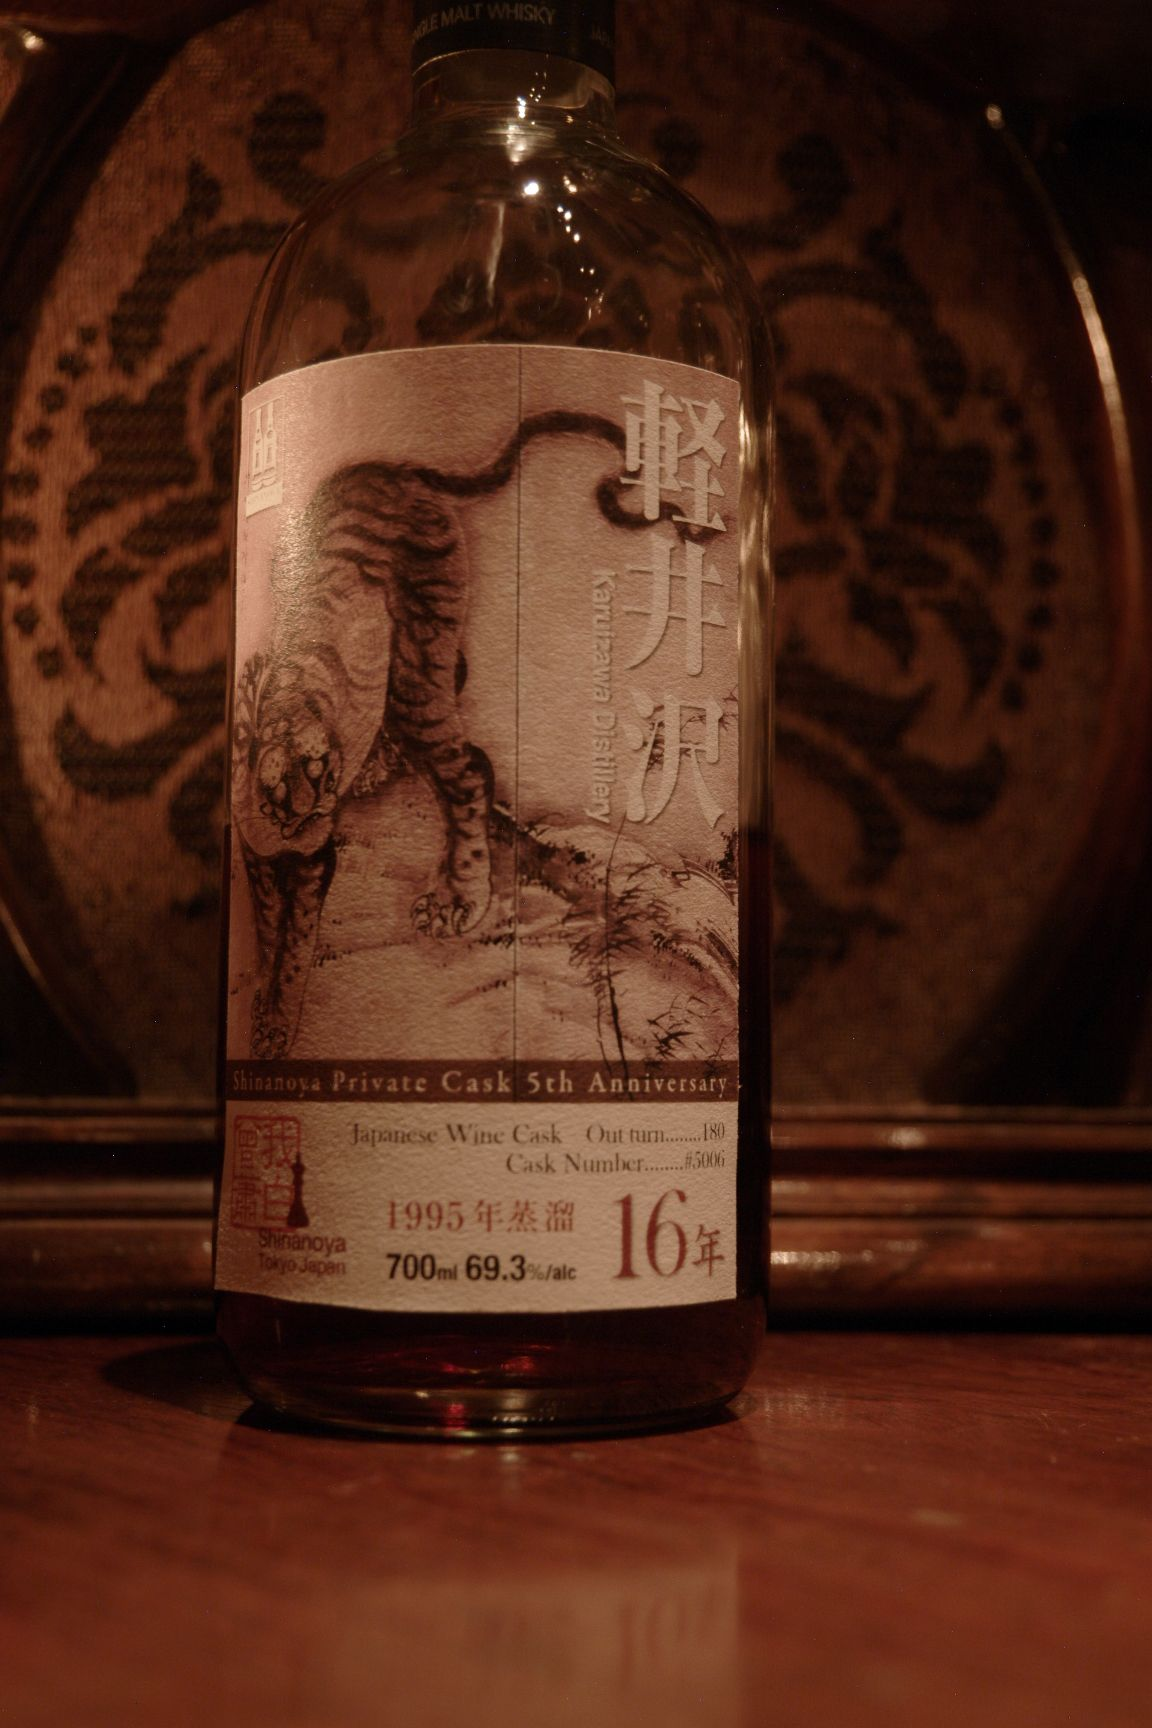 Karuizawa 1995, 16y, Japanese wine cask, for Shinanoya